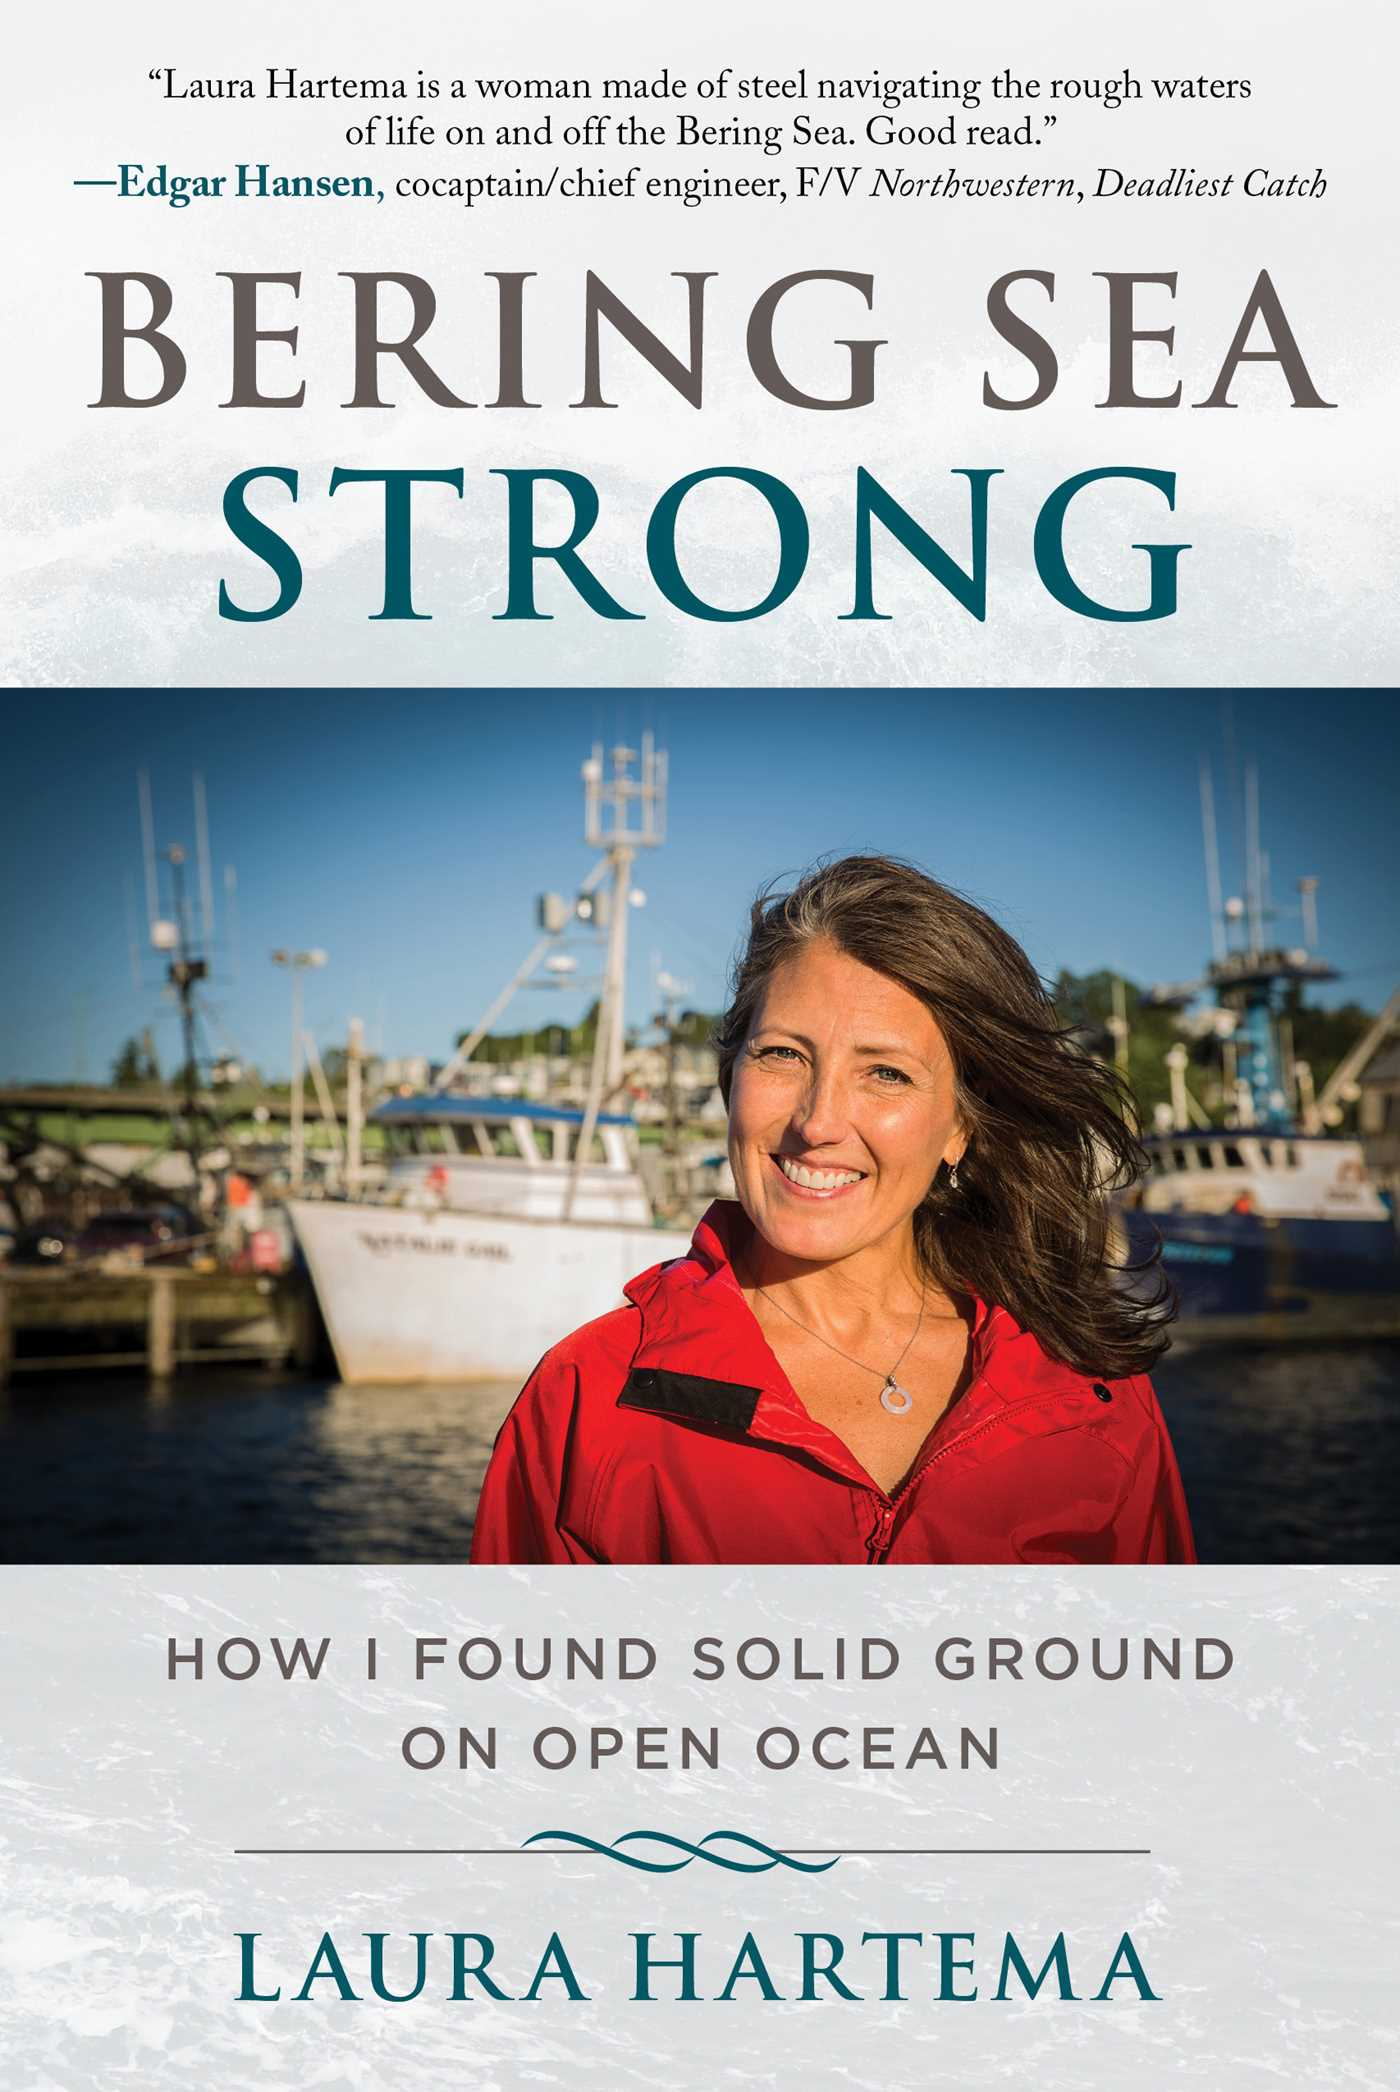 Book Cover Image (jpg): Bering Sea Strong